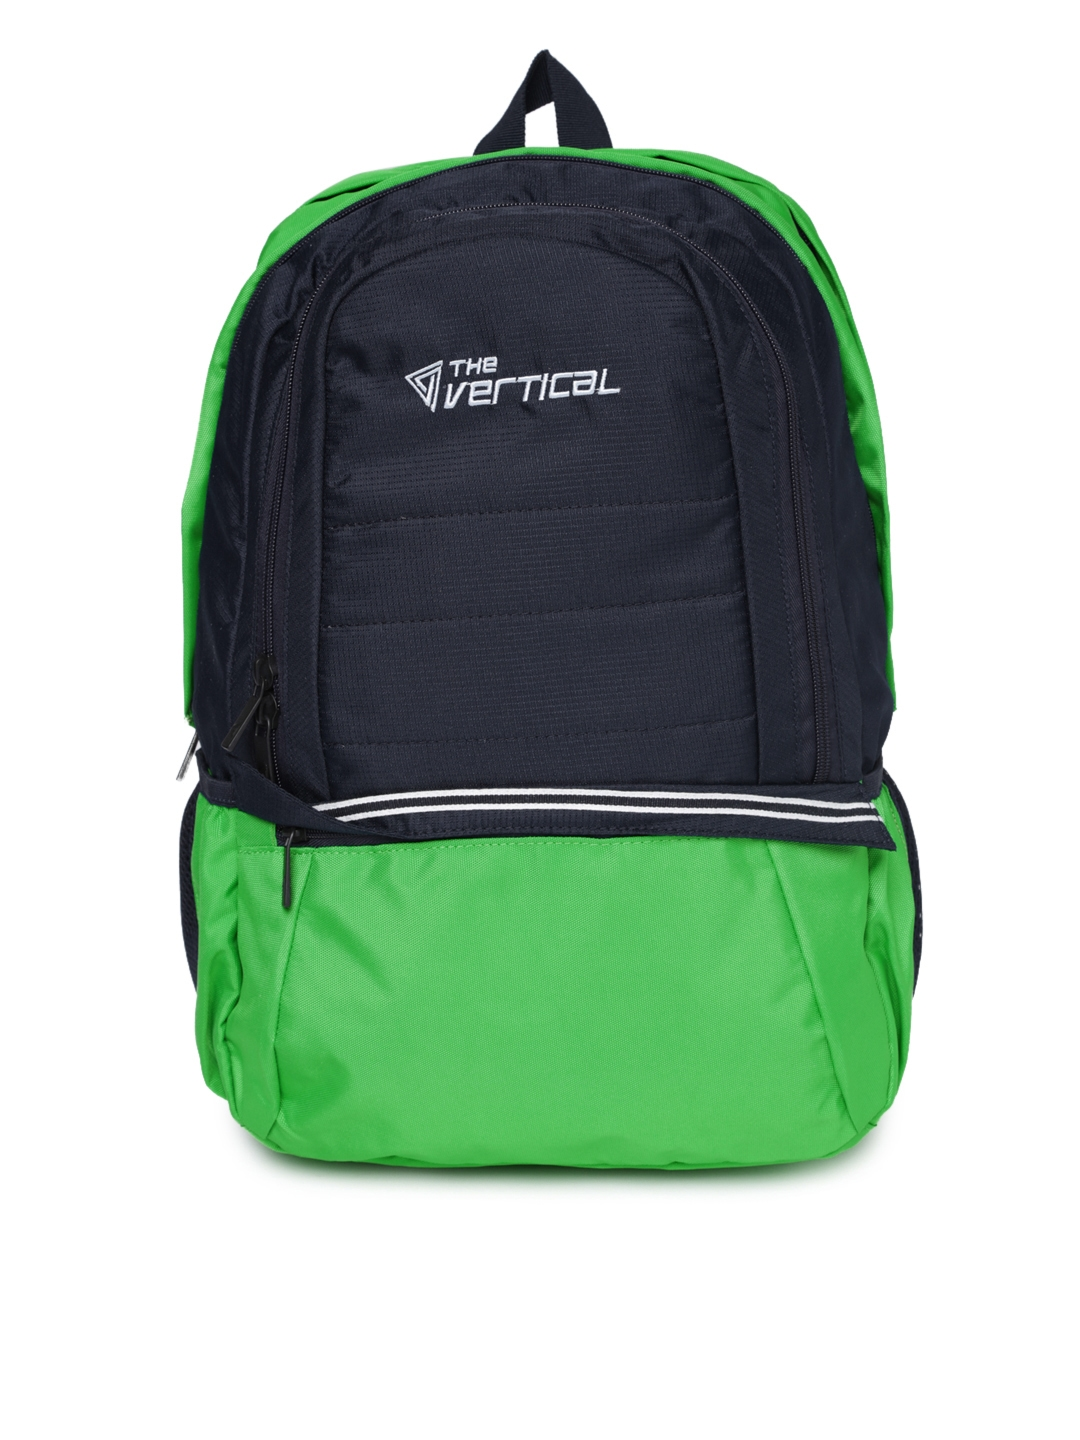 THe VerTicaL Unisex Navy   Green Laptop Backpack